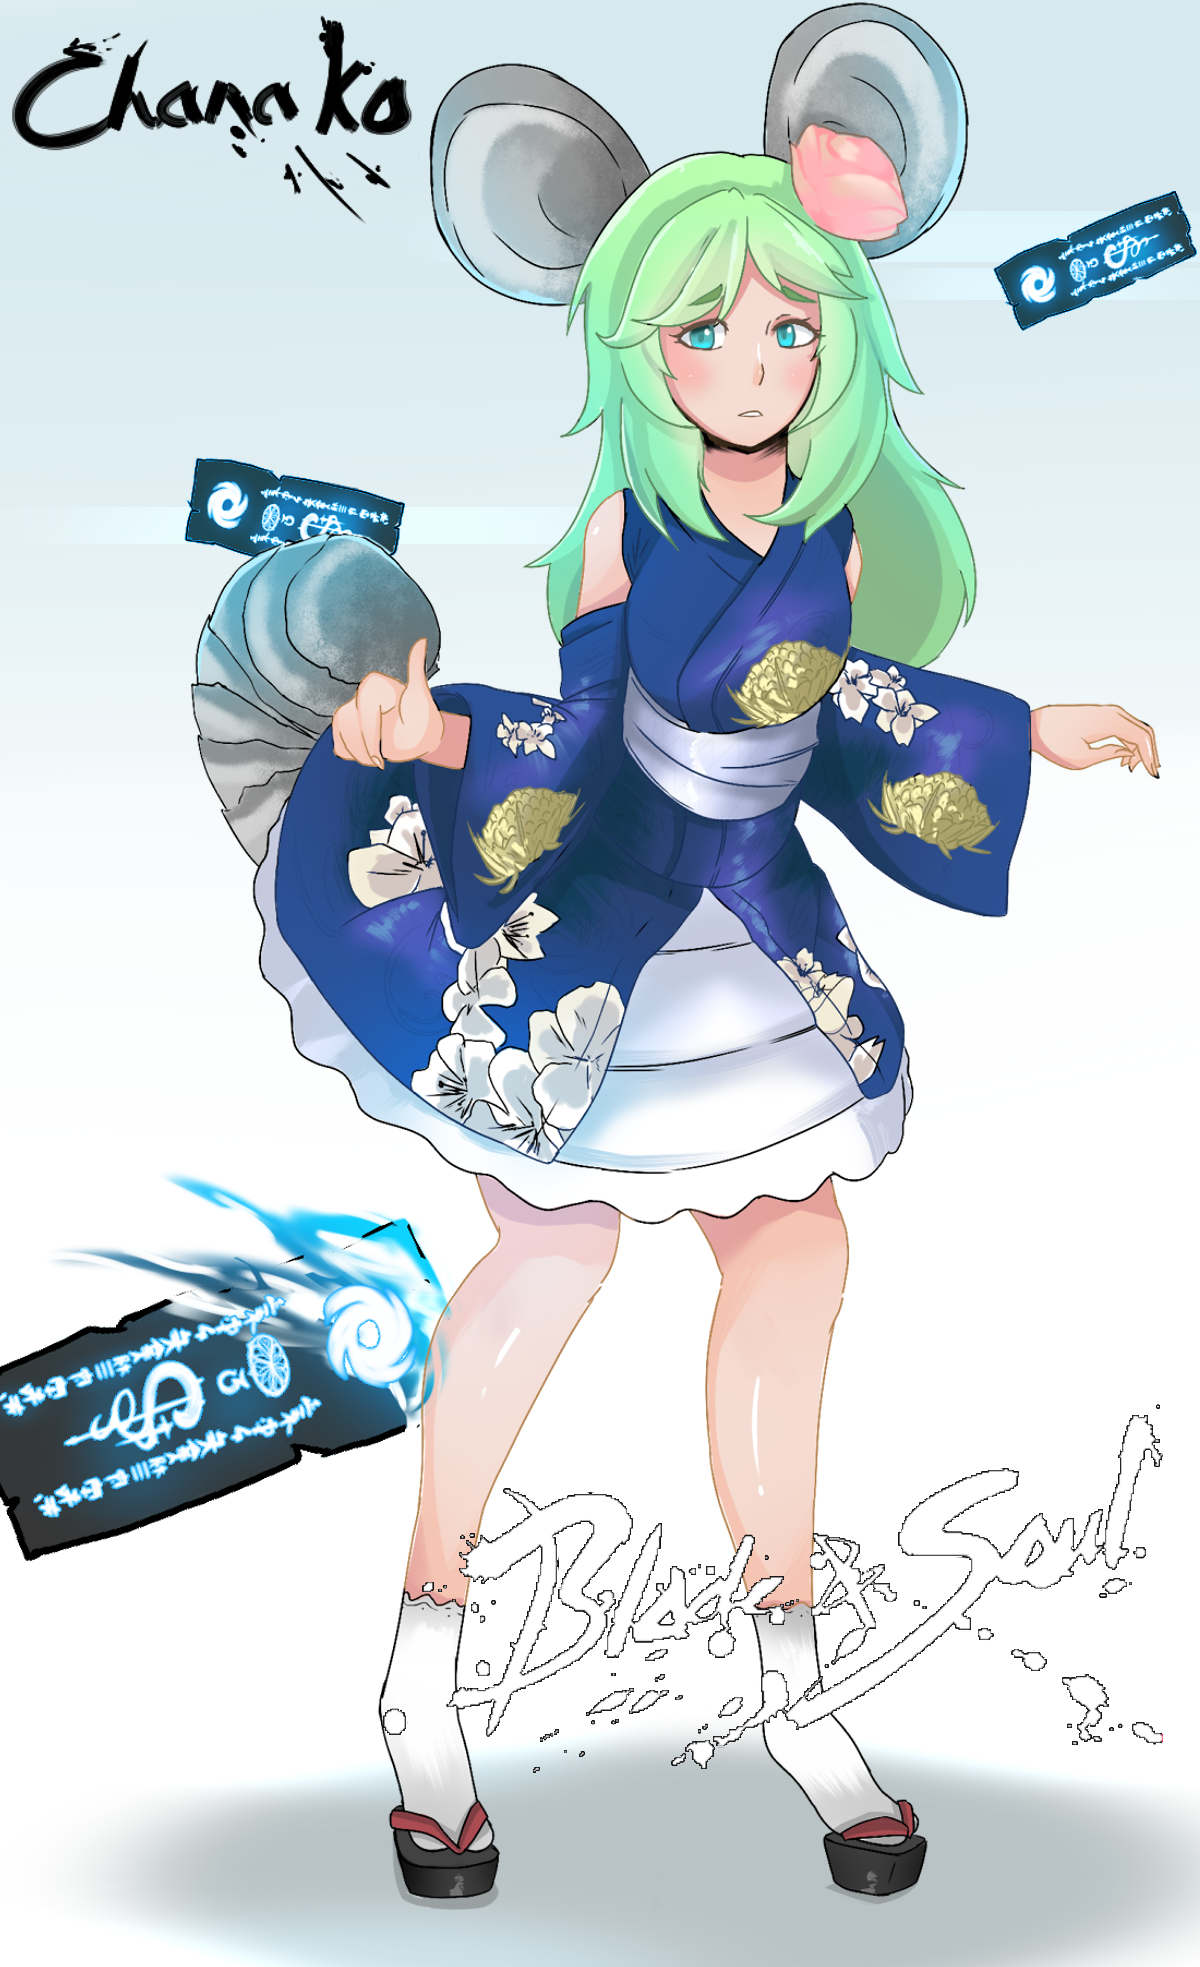 bns_chanako_2_by_xerophase-db7heev.png